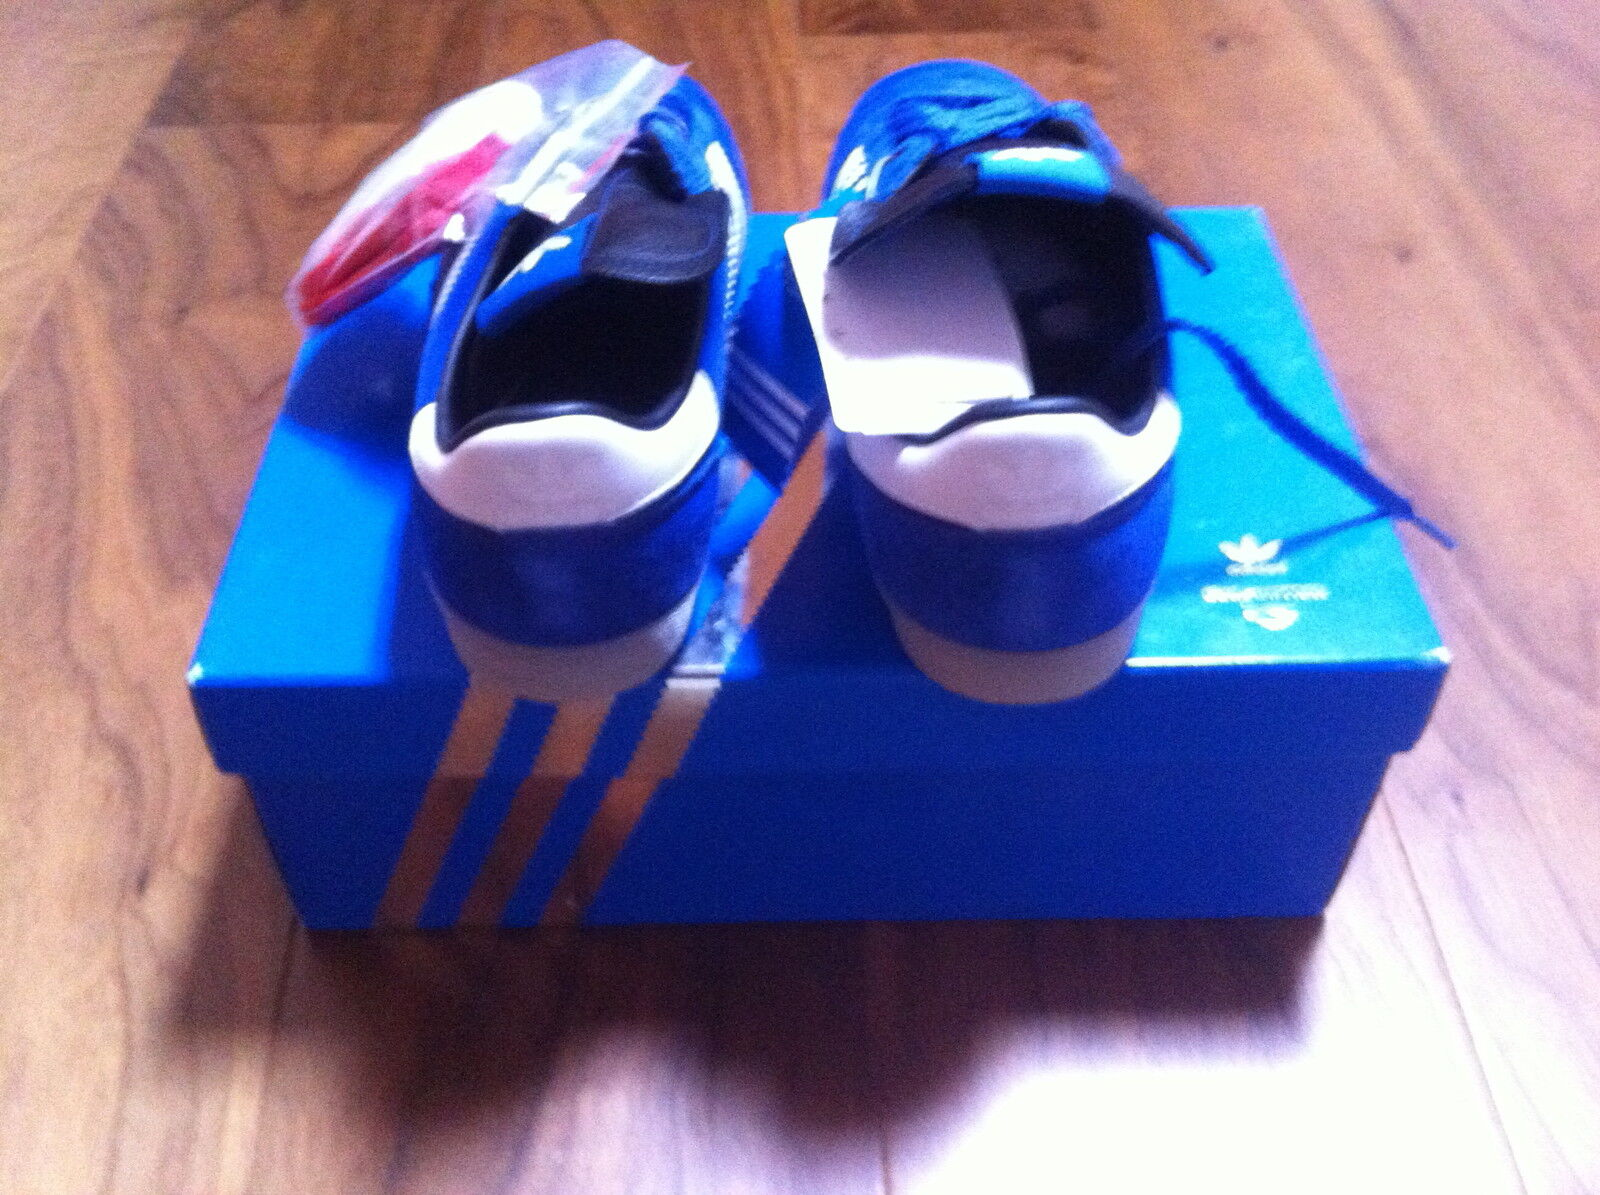 ADIDAS CONSORTIUM ADICUP 2010 VOTARY SOLD UNDFTD ARKITIP LIMITED EDITION SOLD VOTARY OUT 8abe97